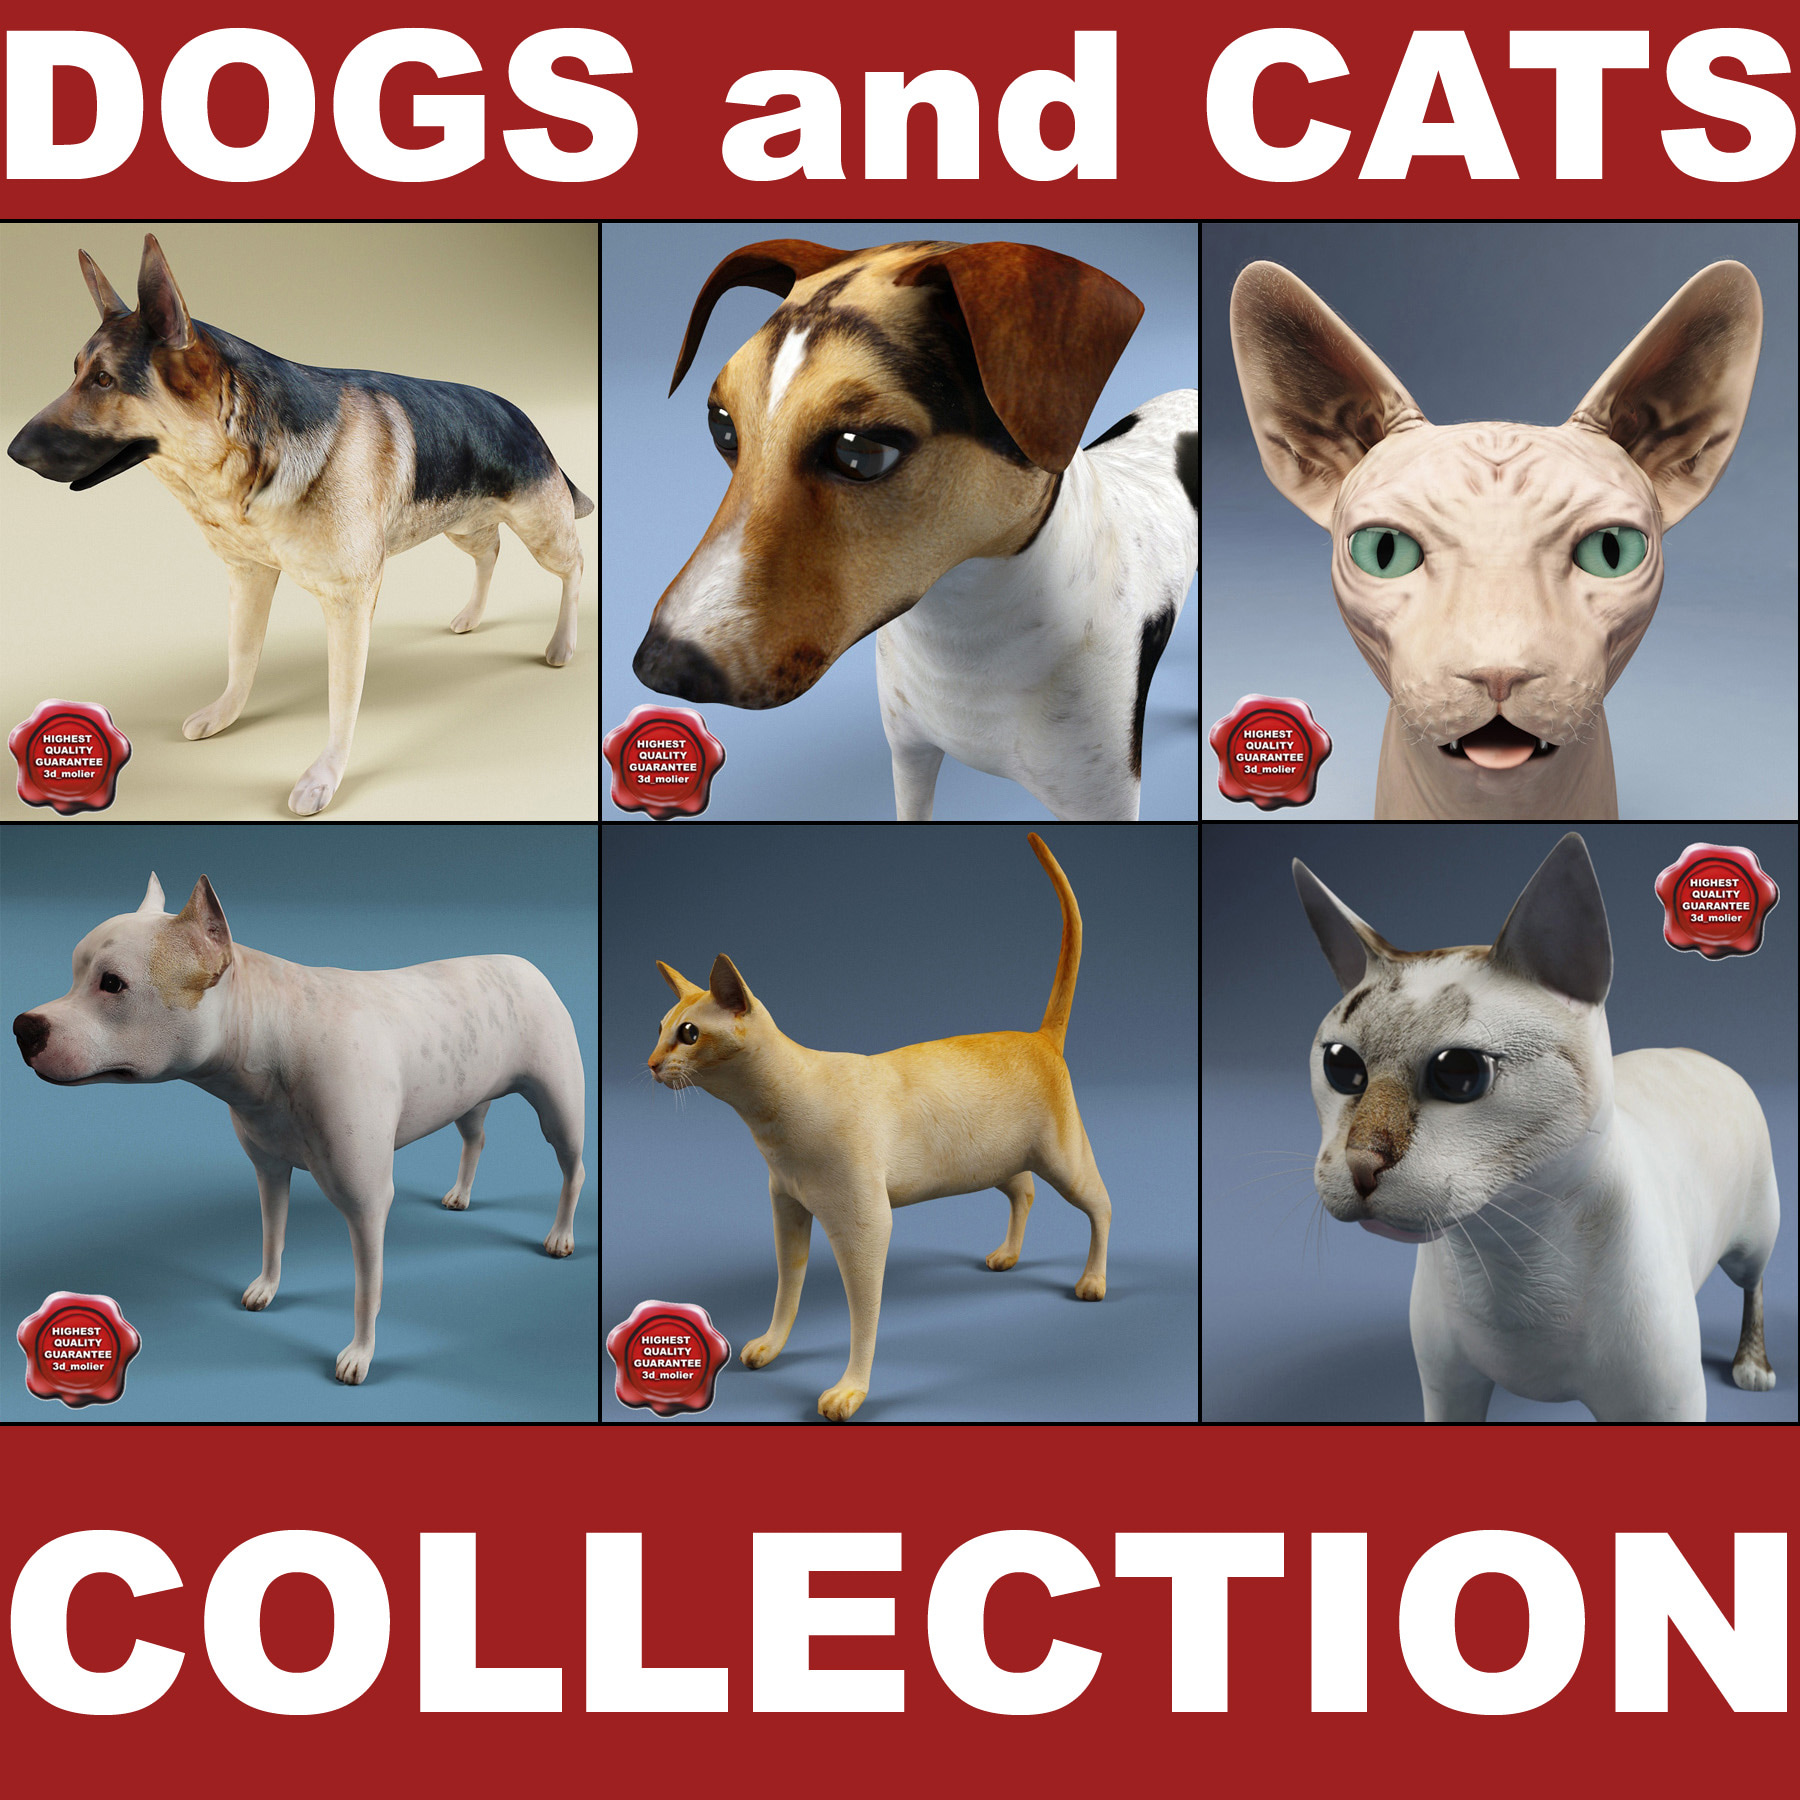 Dogs_and_Cats_Collection_00.jpg